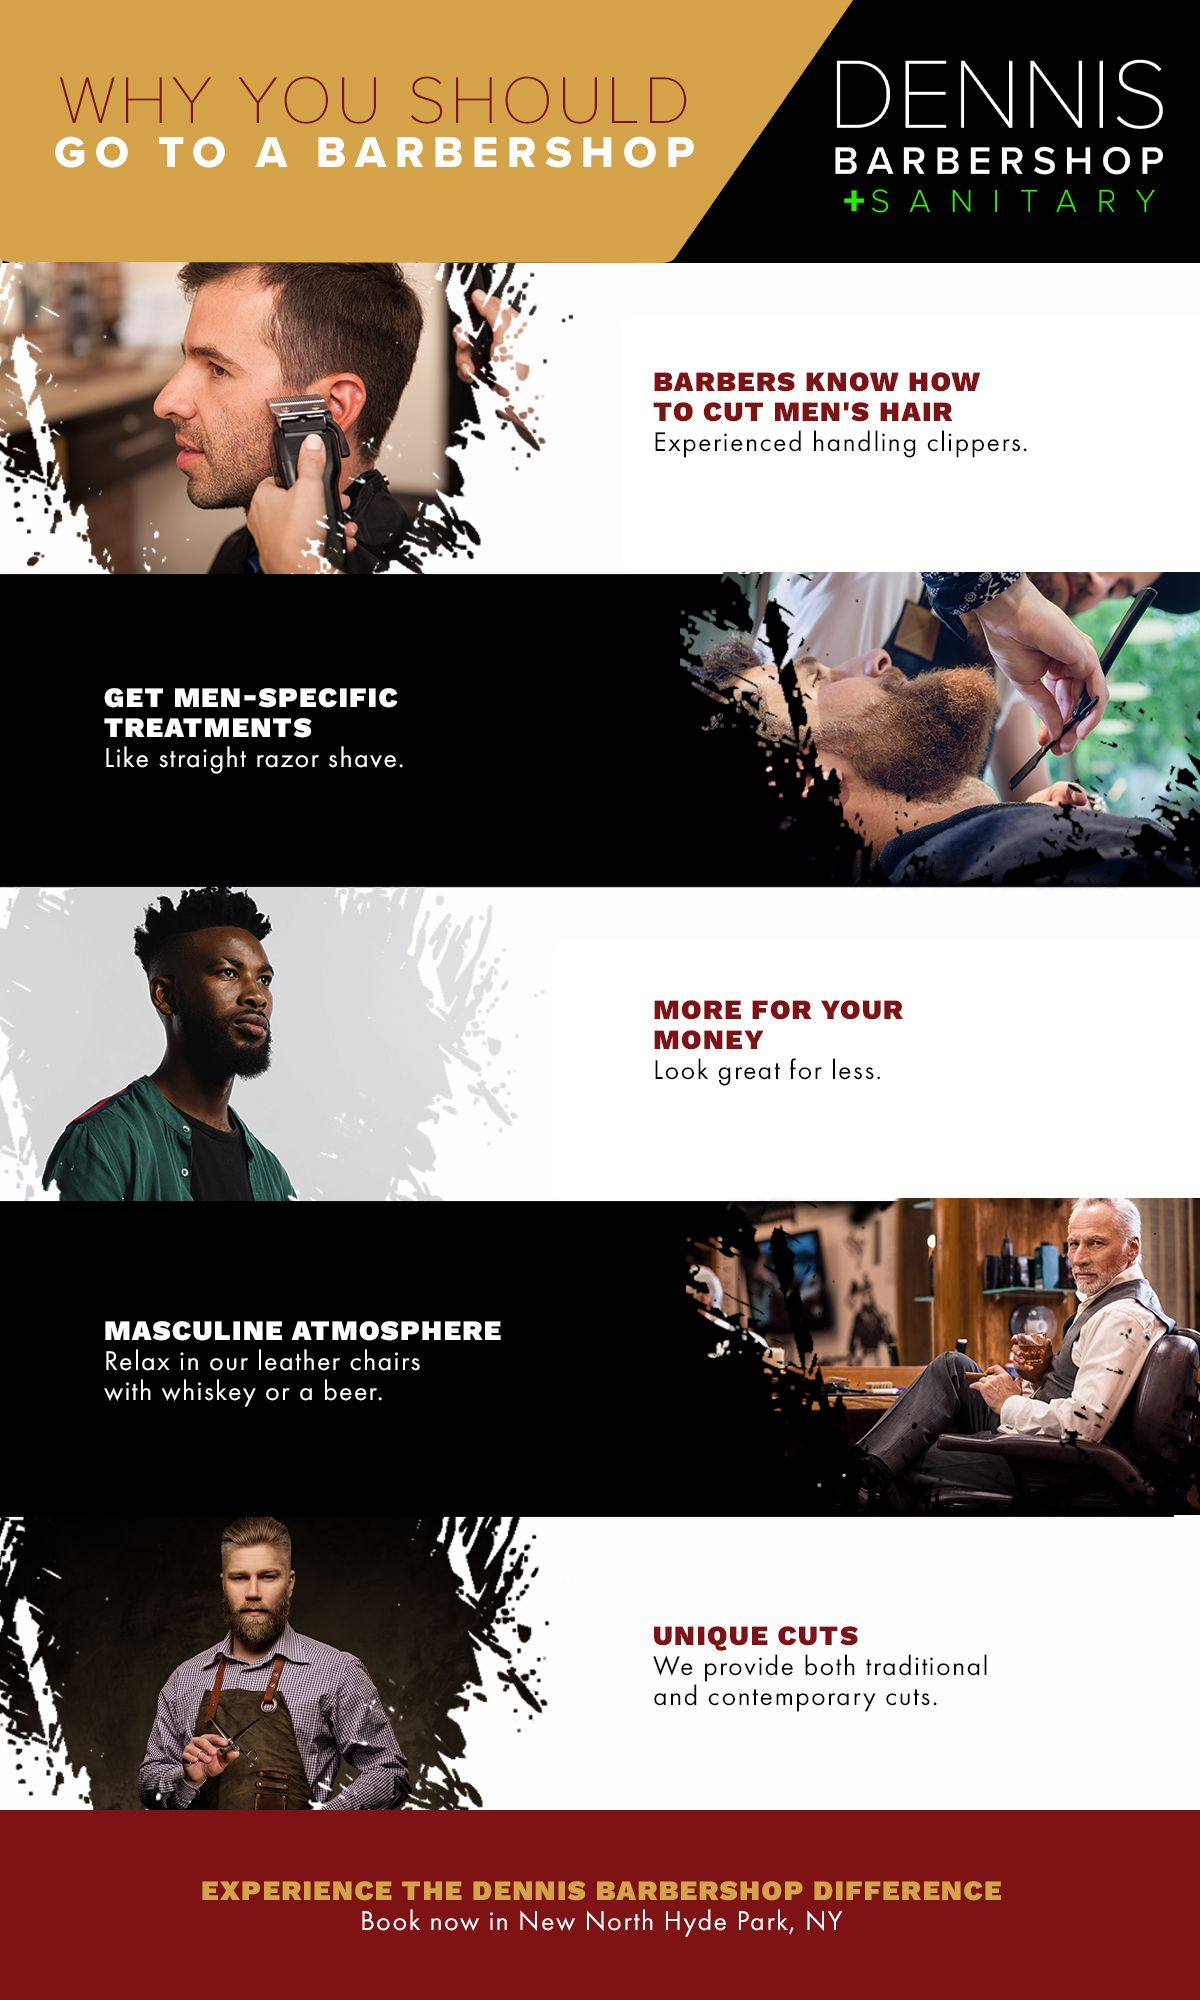 Why You Should Go To A Barbershop Infographic.jpg